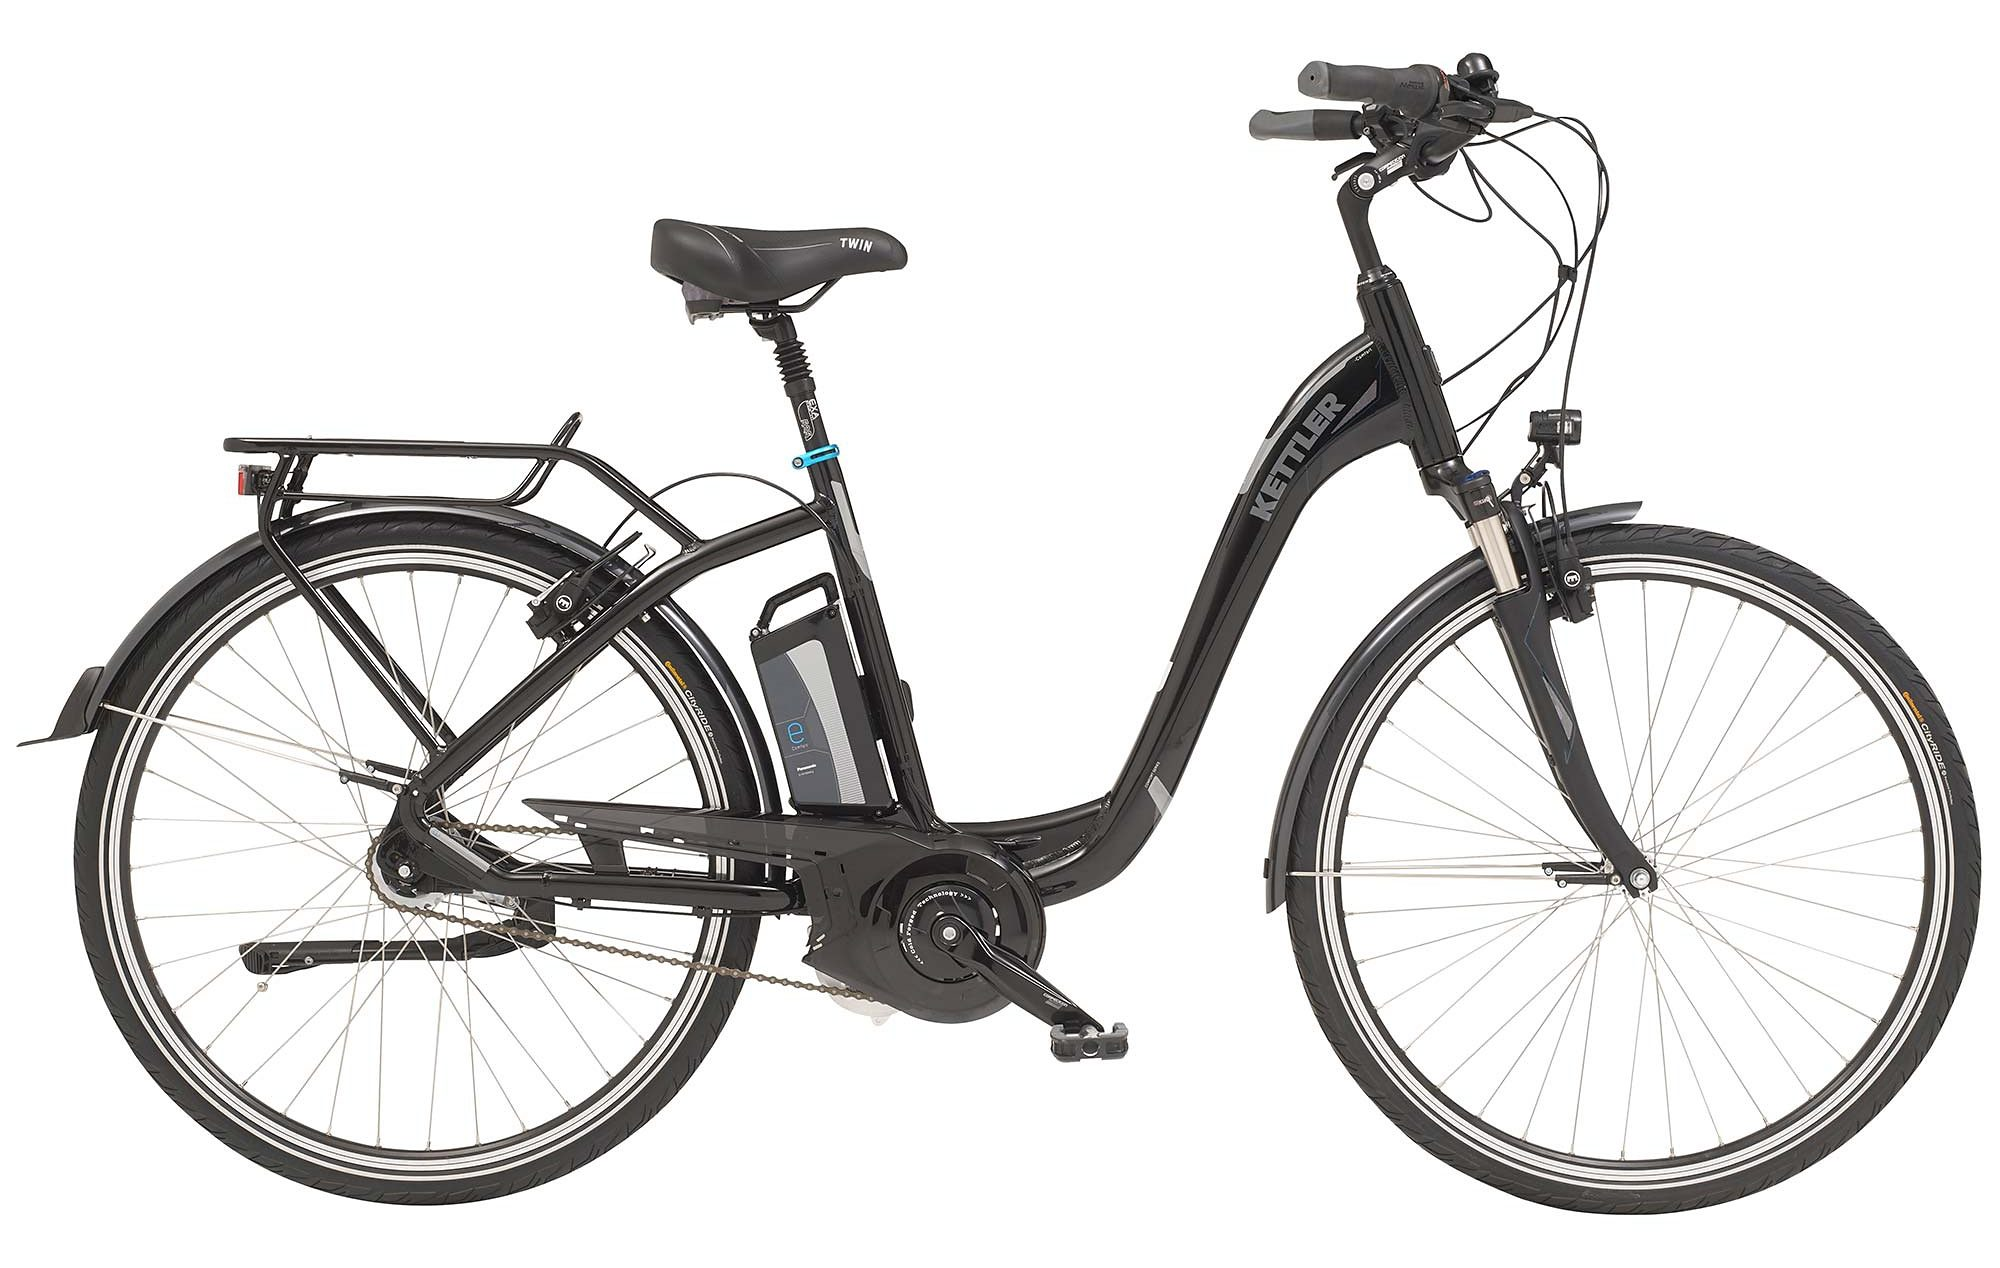 Kettler E-City-Bike, Damen, 26-Zoll, 7 Gang Shimano, Freilauf, 15 Ah, »Twin«